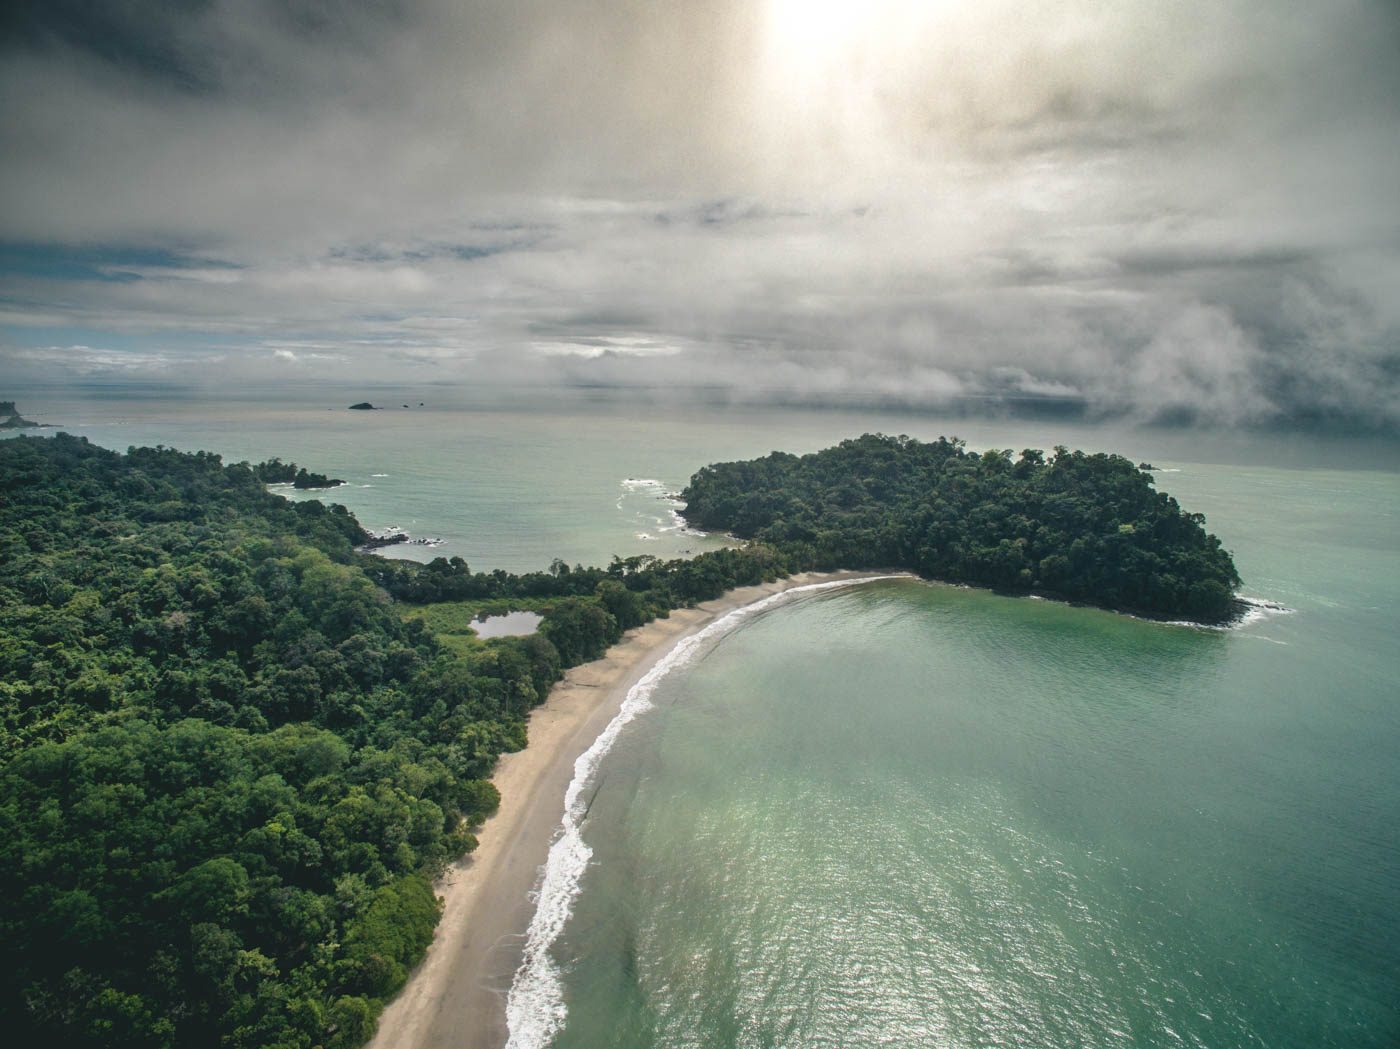 Costa Rica itinerary: Manuel Antonio National Park